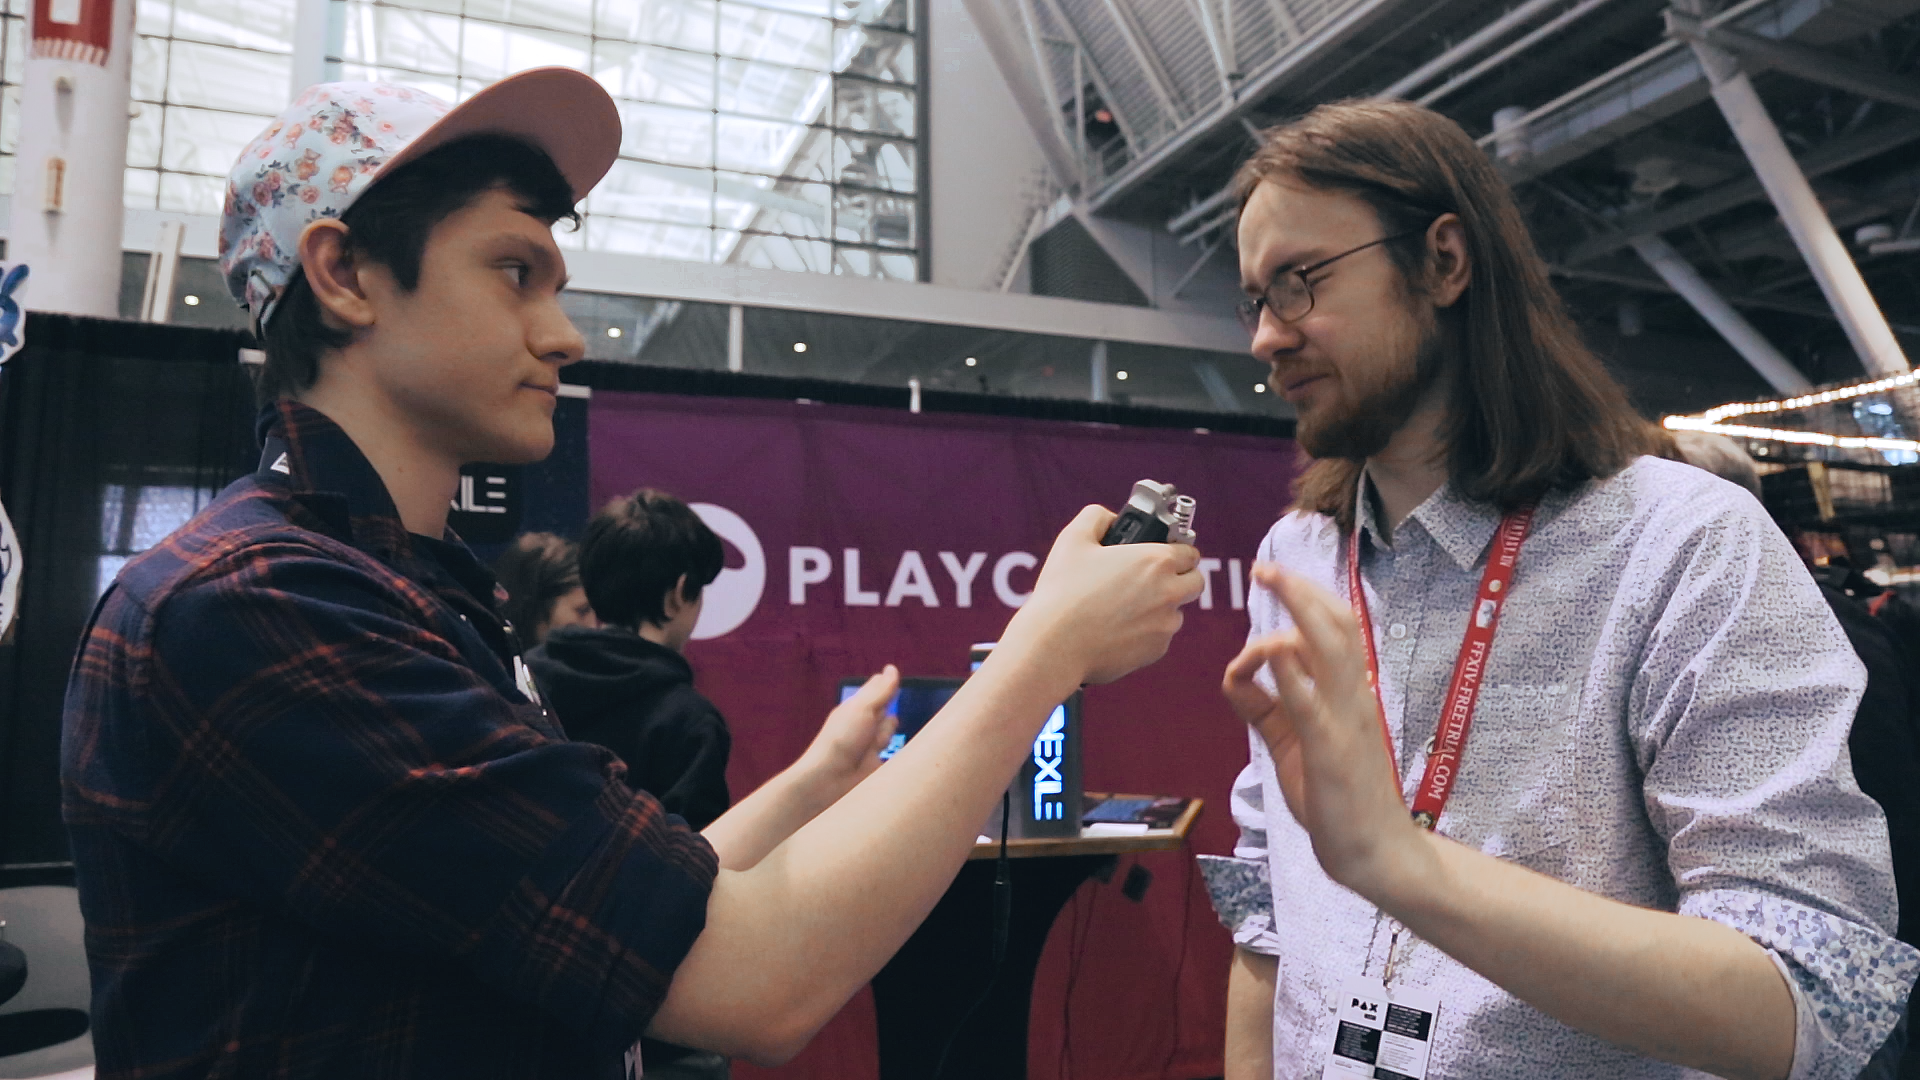 SHOWCASING W/PLAYCRAFTING - Article & Video Interview